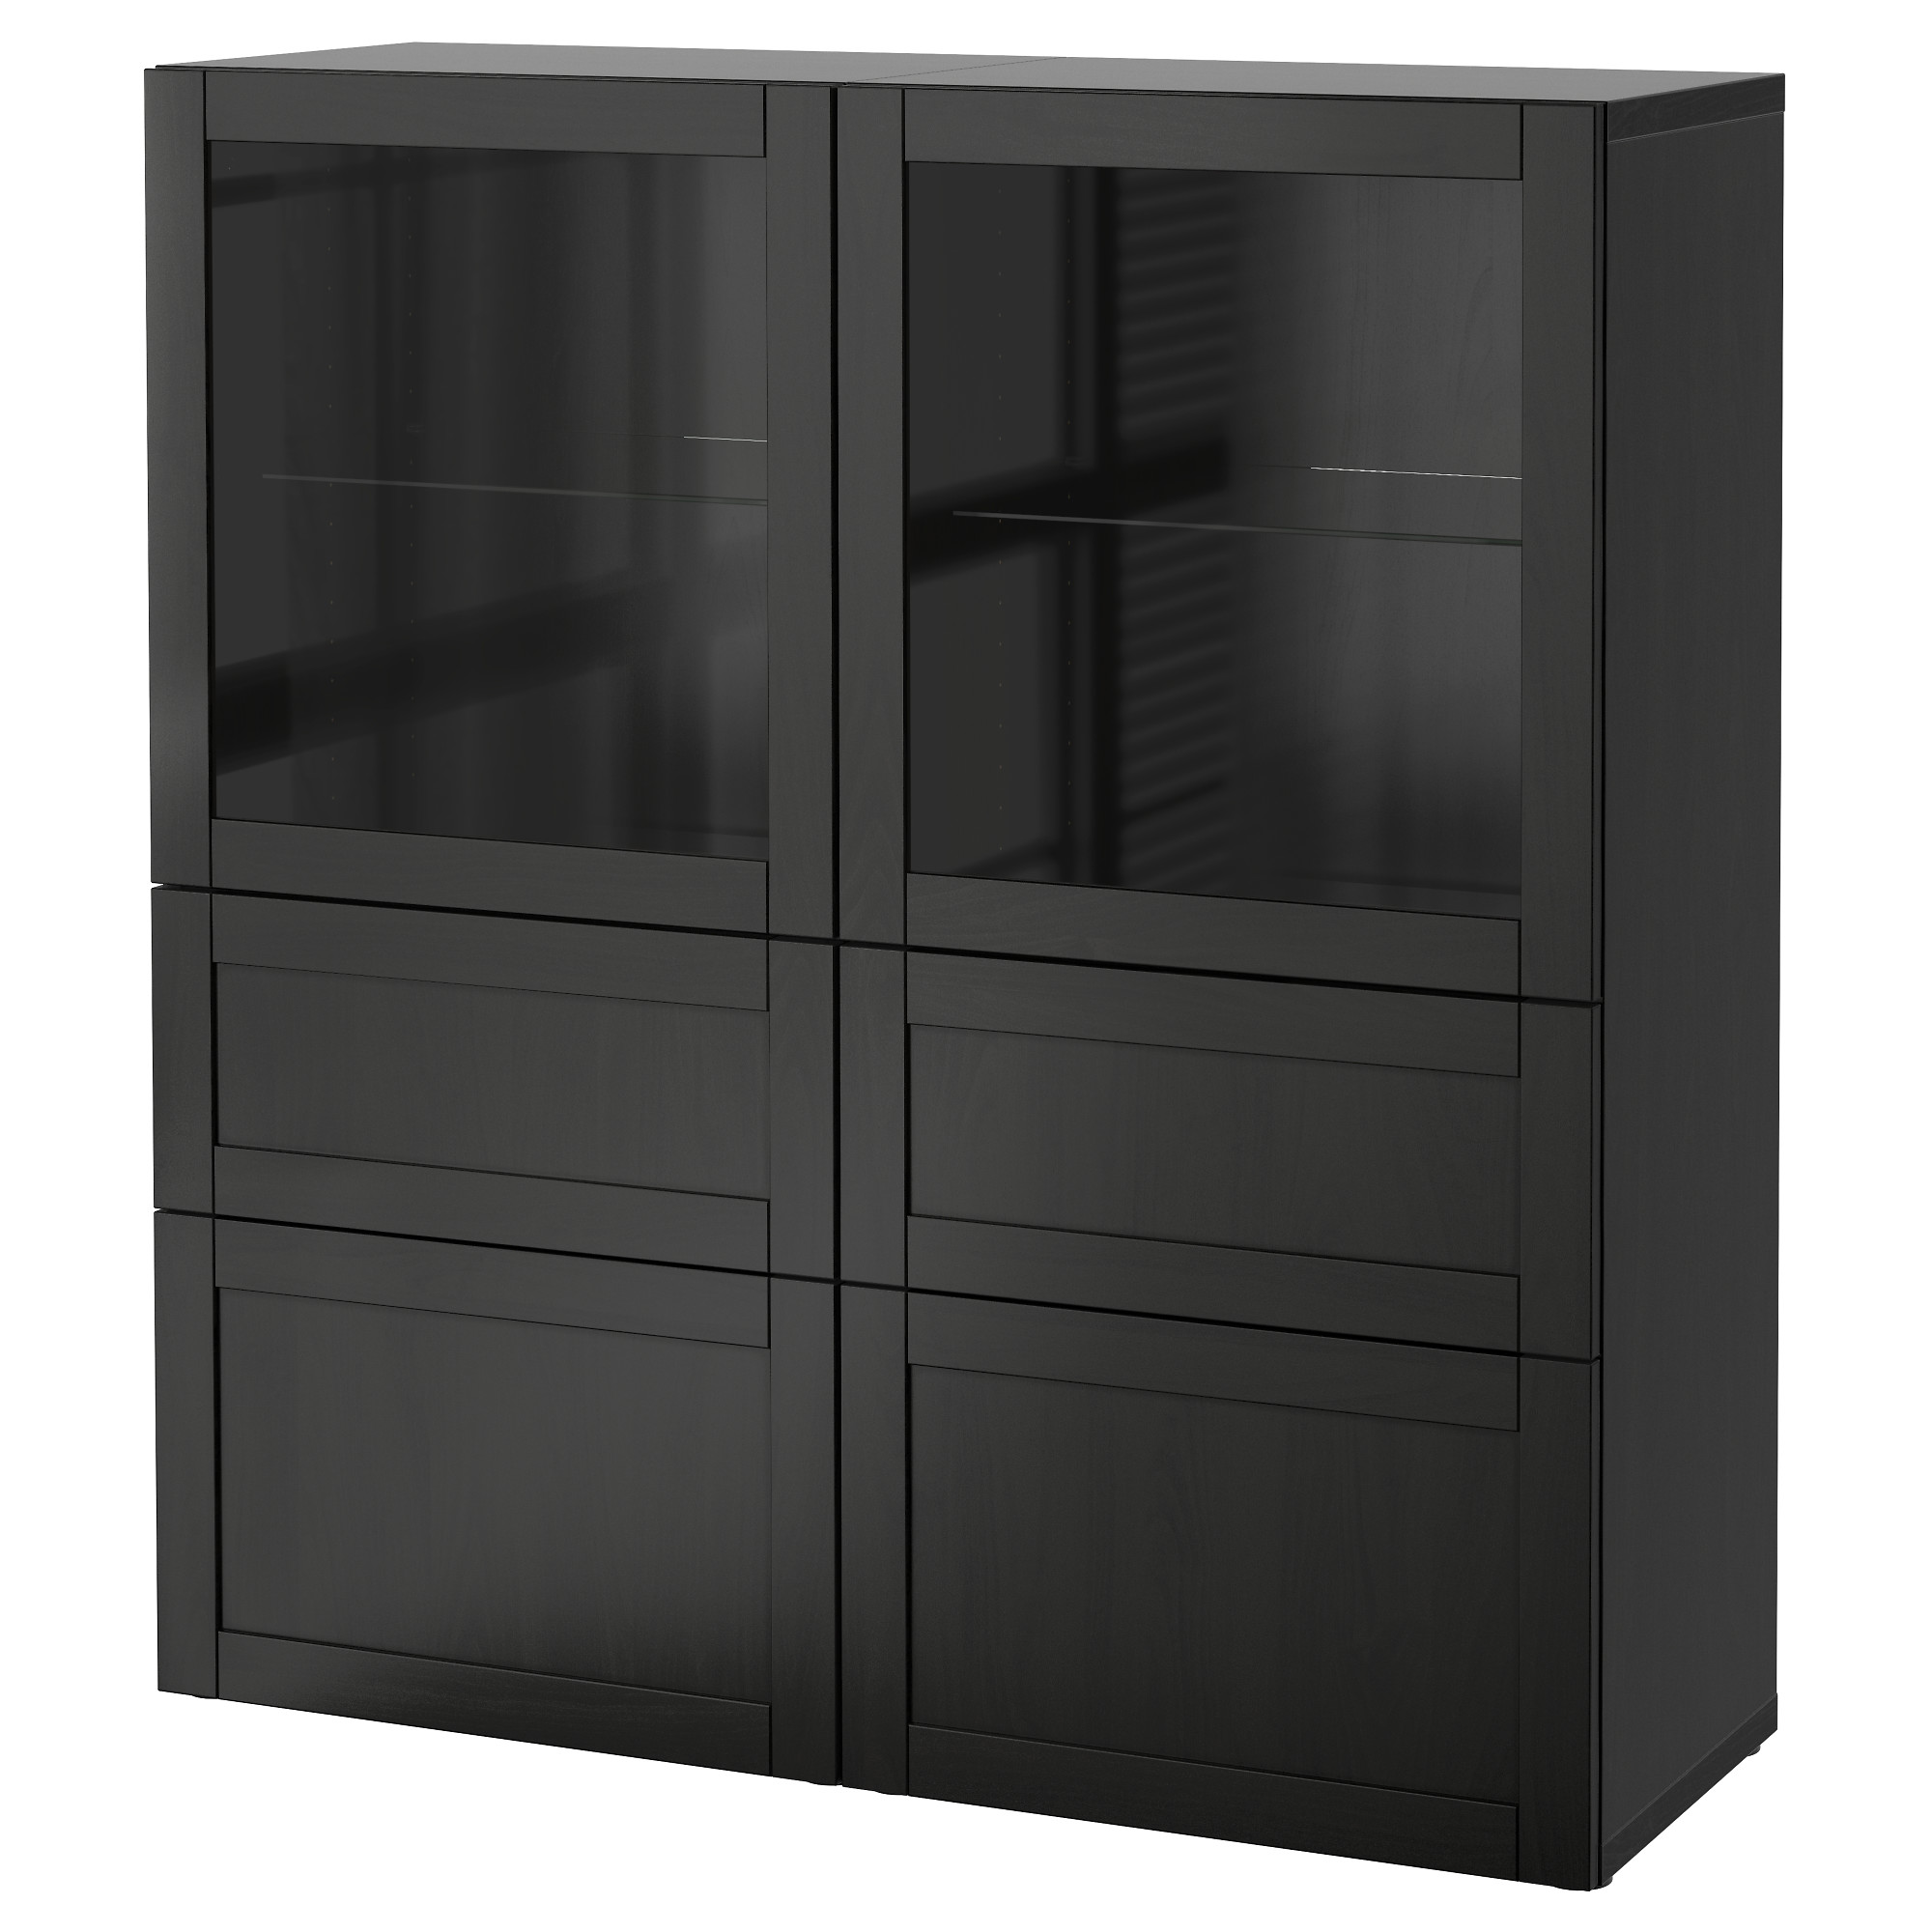 meuble pour ranger les verres. Black Bedroom Furniture Sets. Home Design Ideas